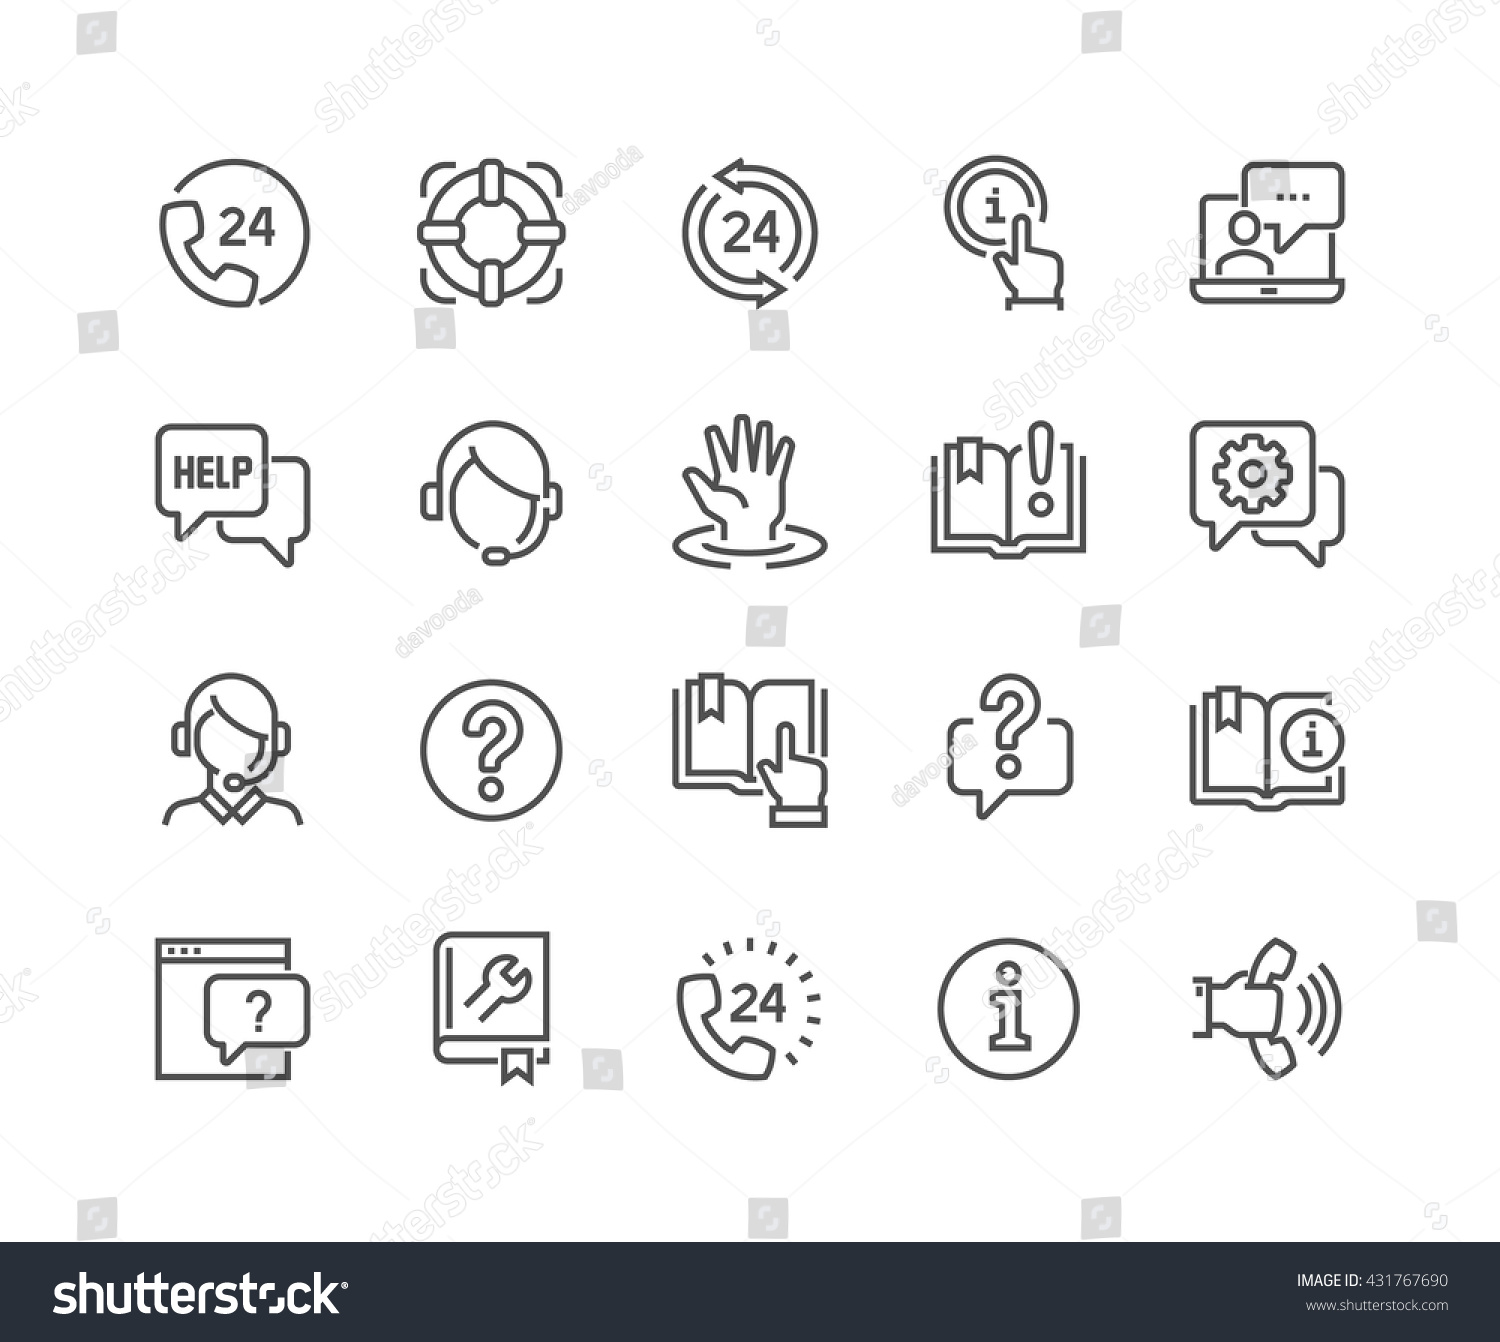 simple set help support related vector stock vector  simple set of help and support related vector line icons contains such icons as phone